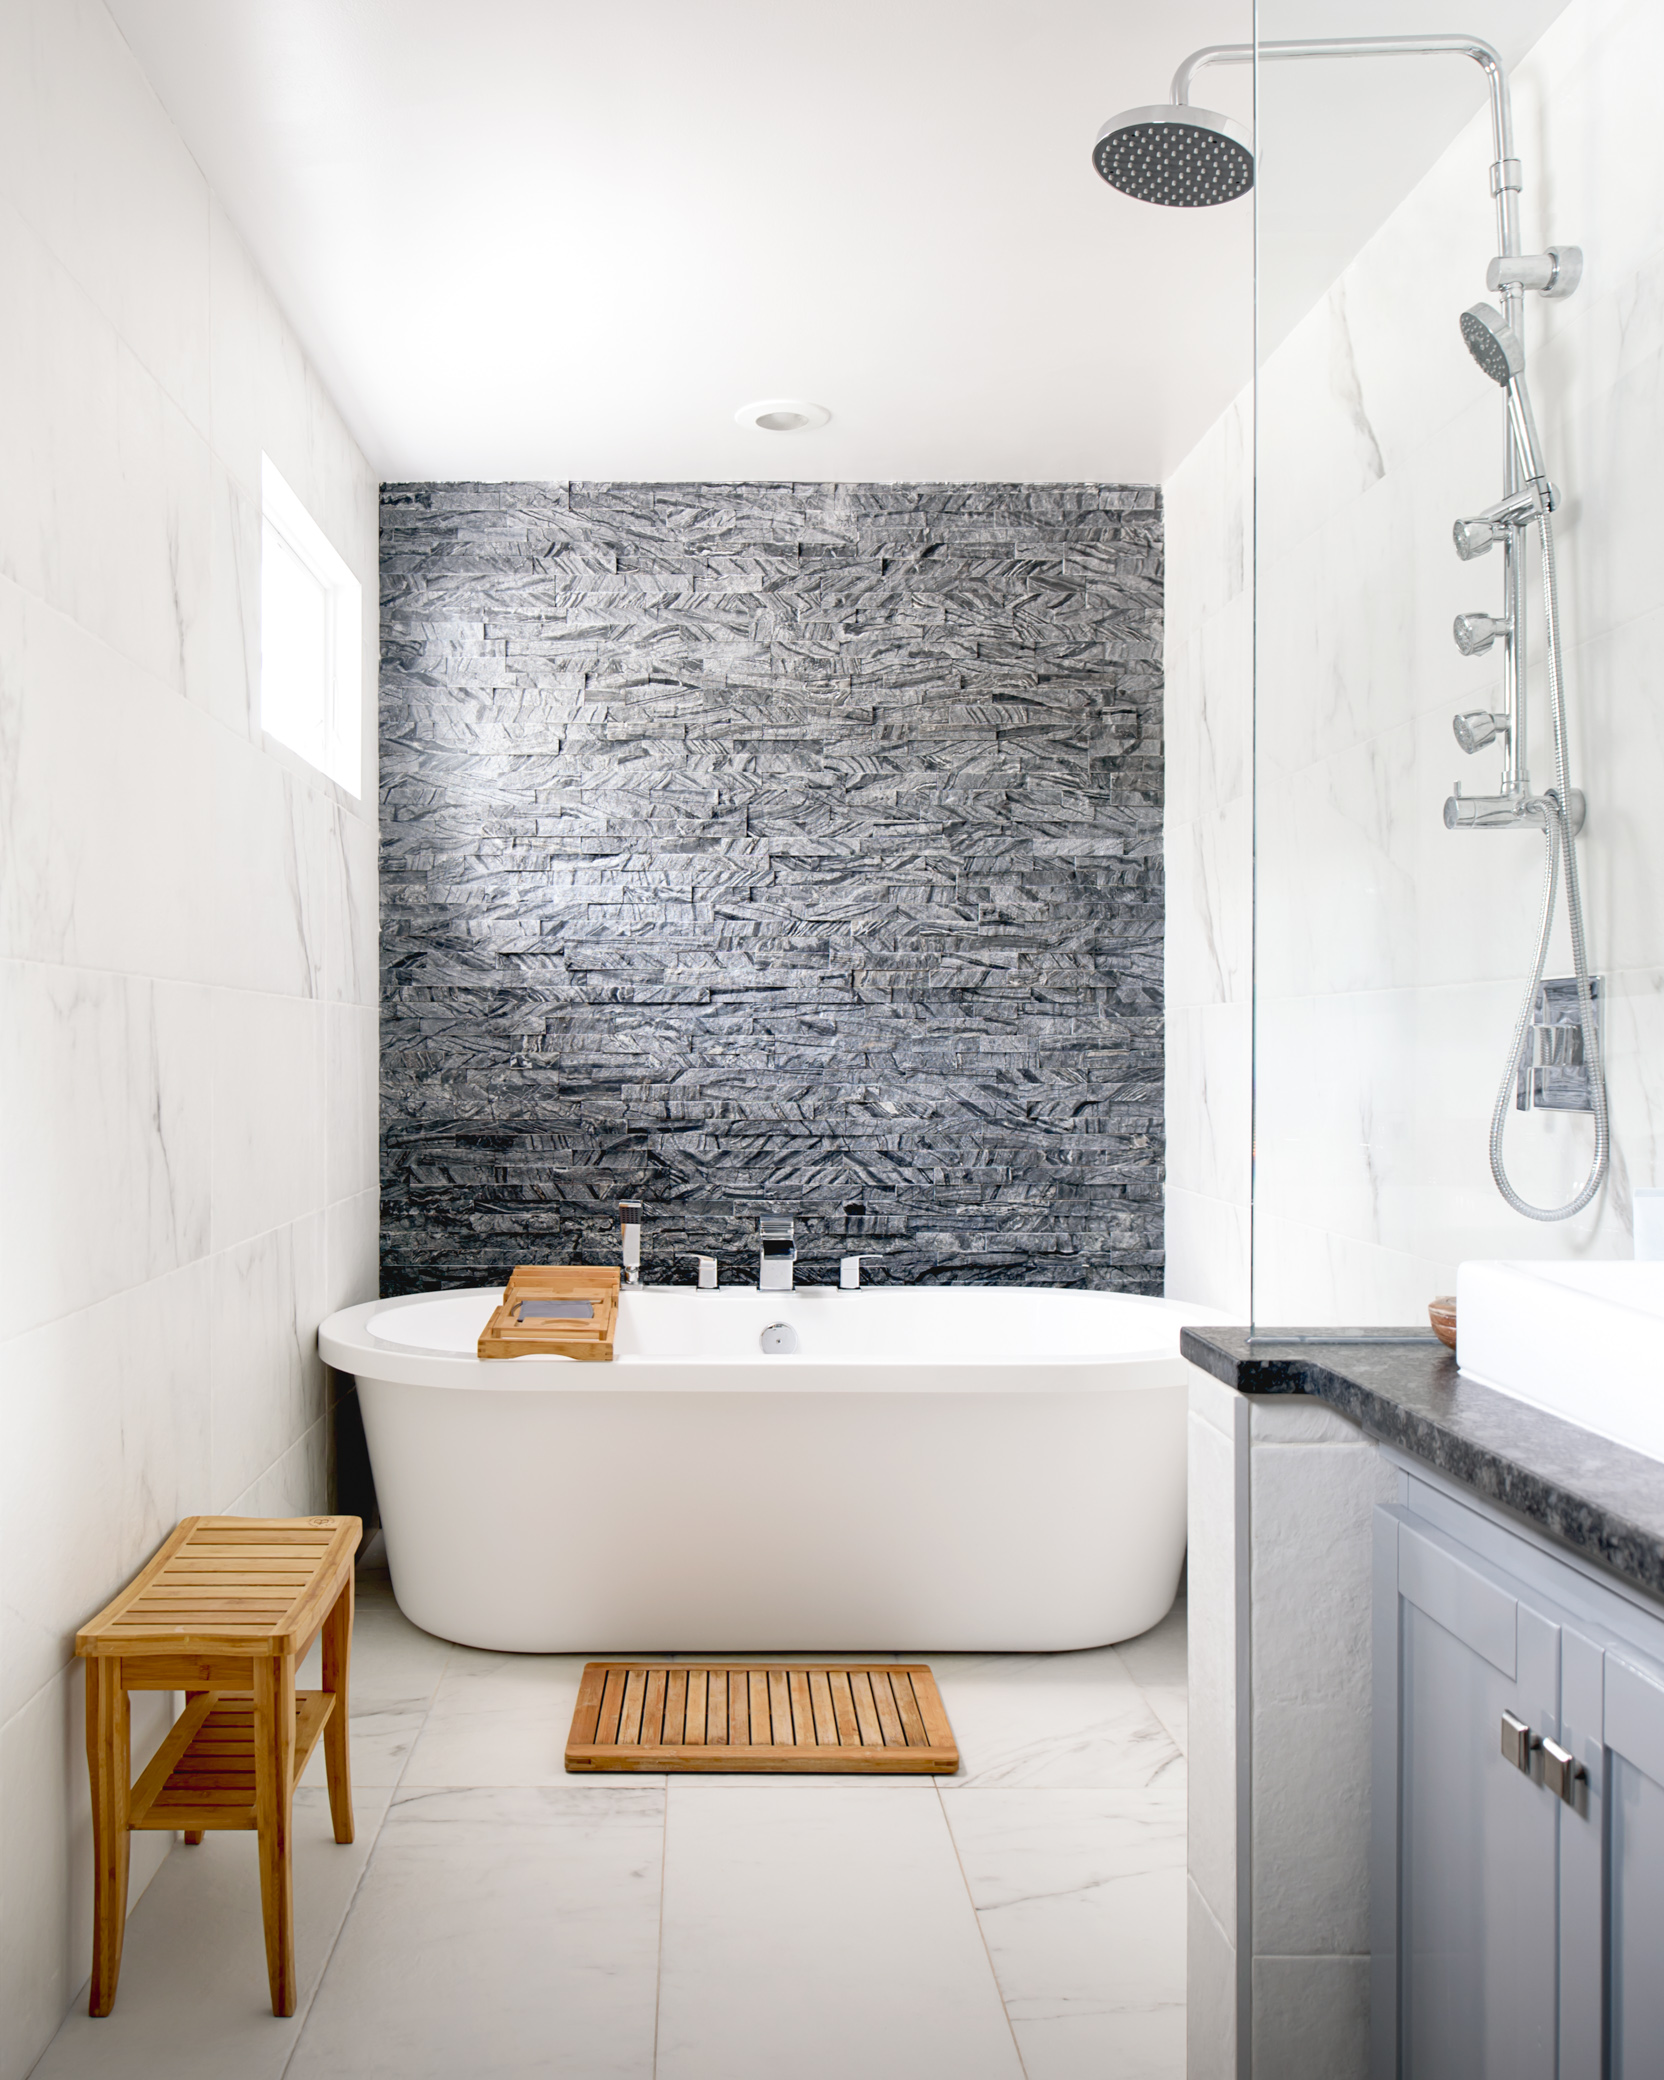 Renovated Owner's Suite Bathroom, Design & Build - © Daniel Green, DannyDanSoy Photography